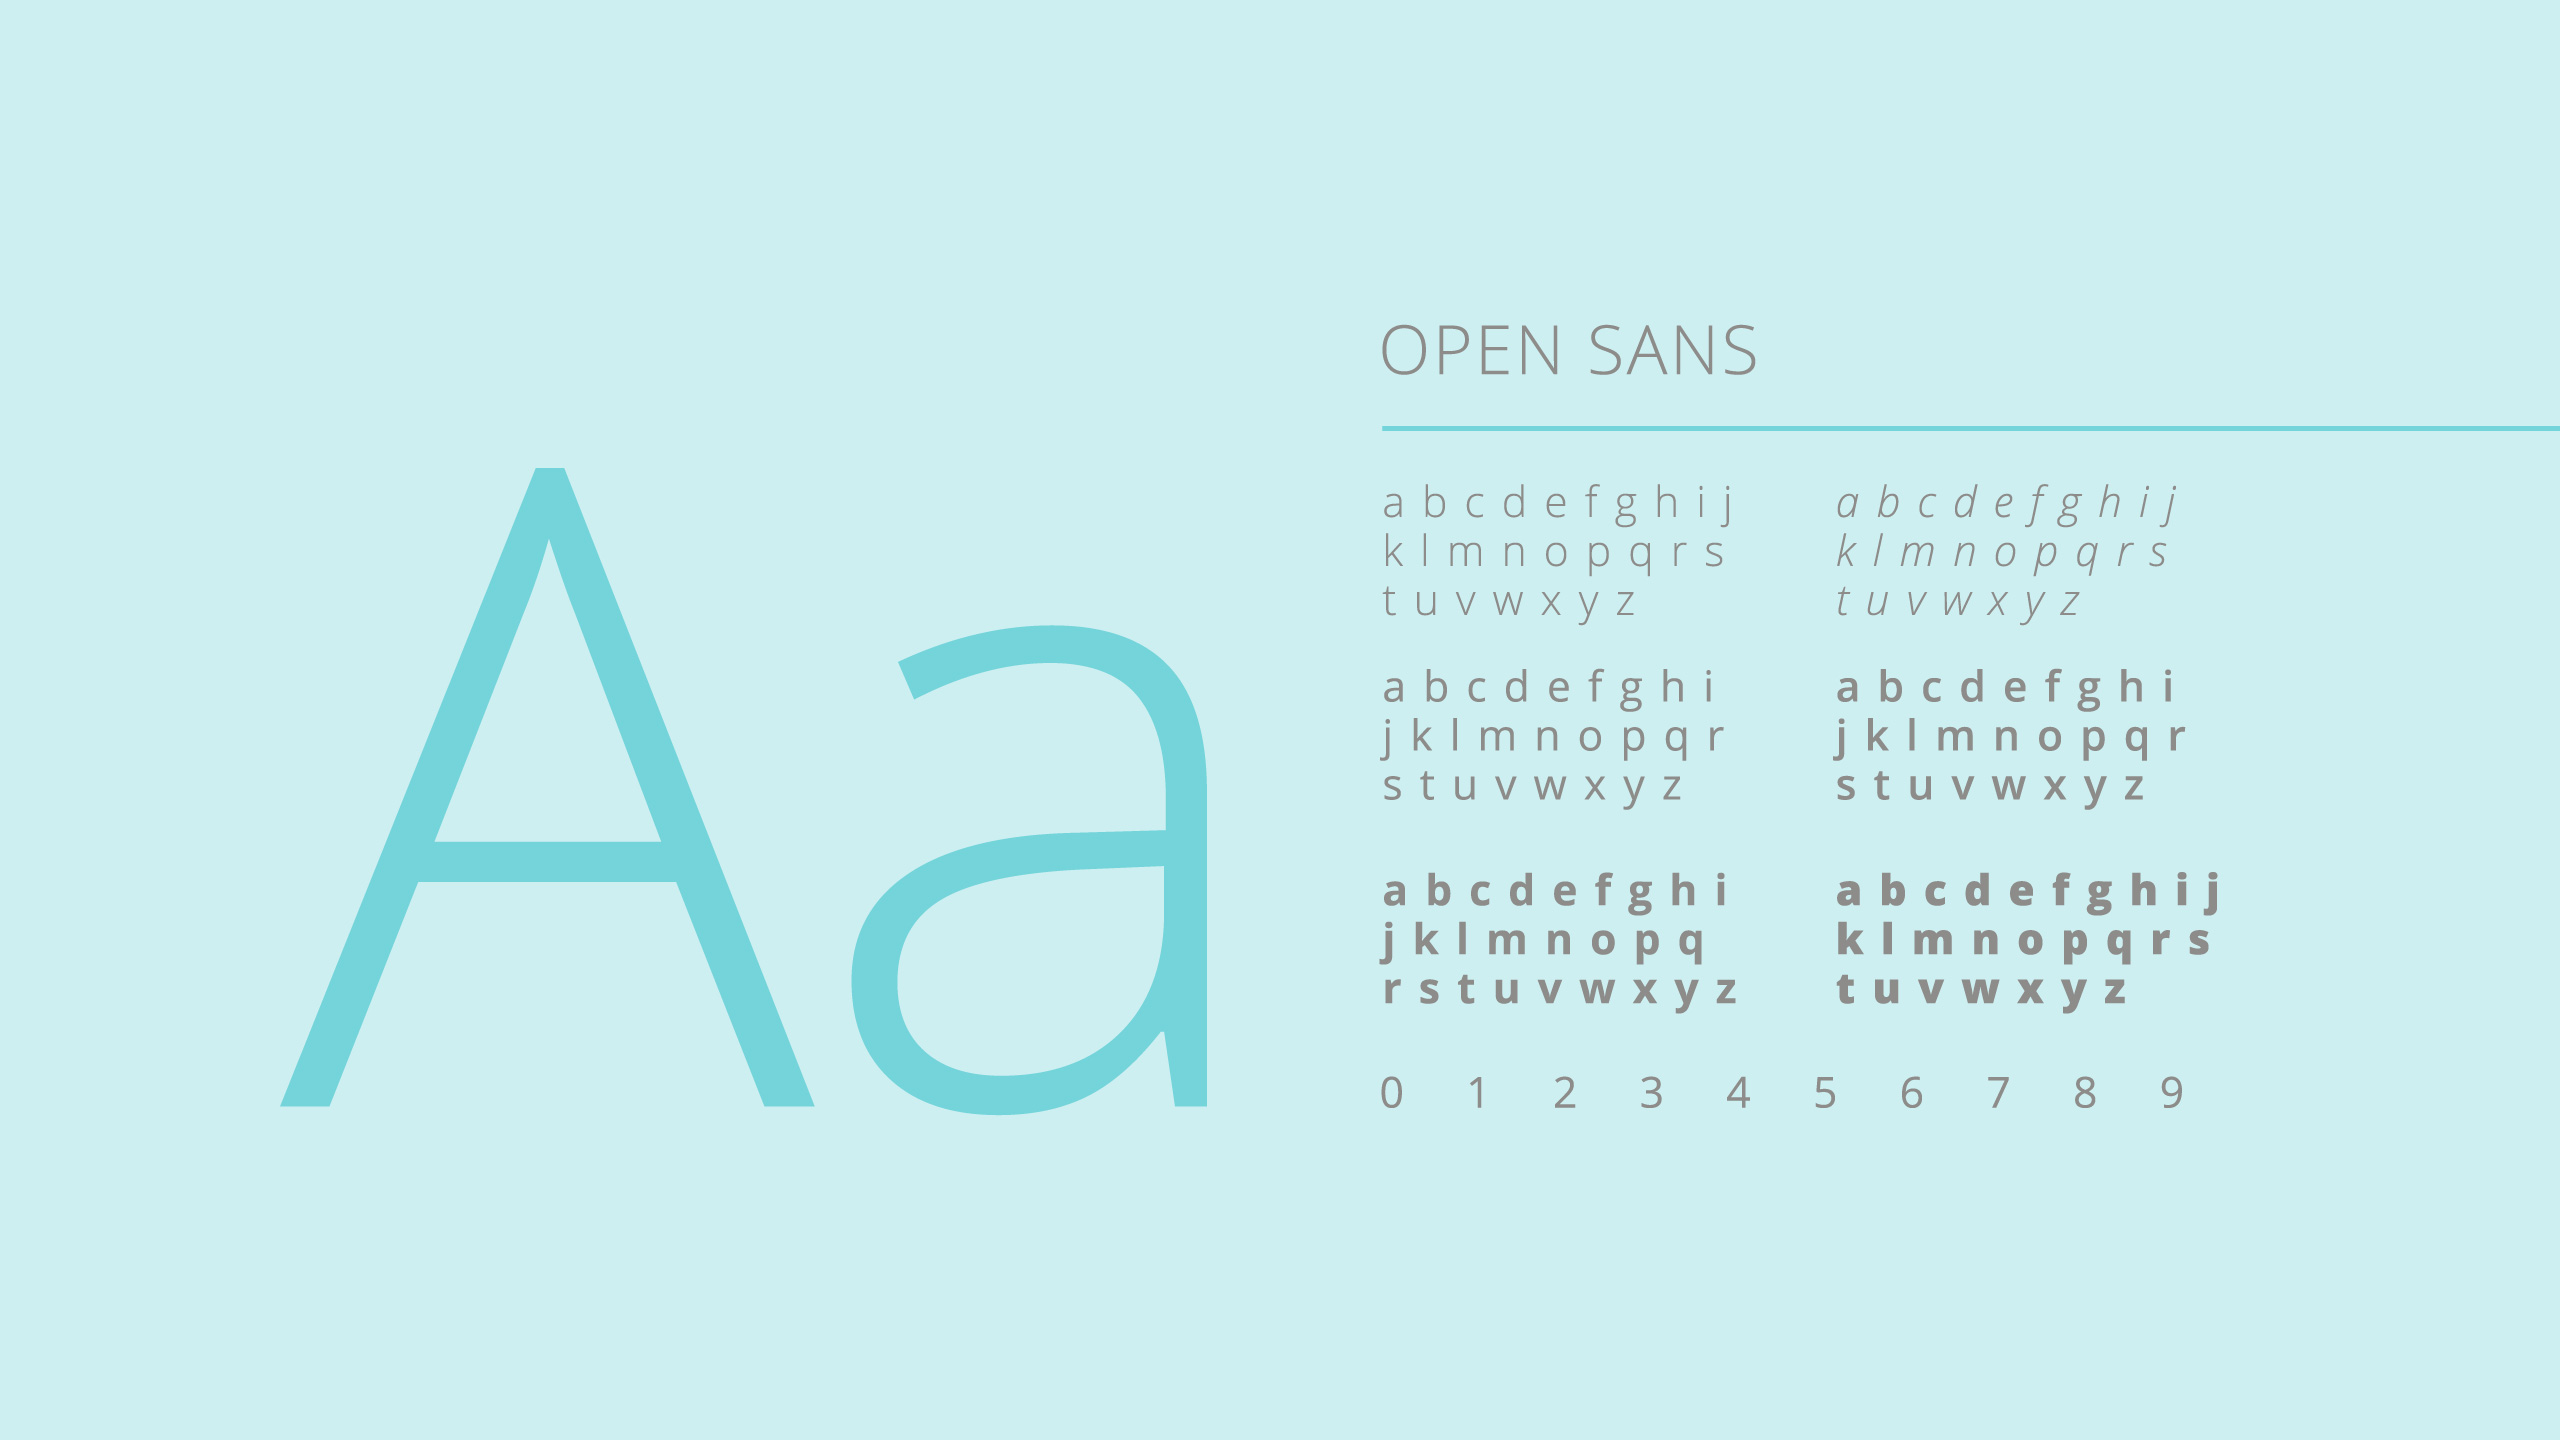 Font family selected for Advamedica branding